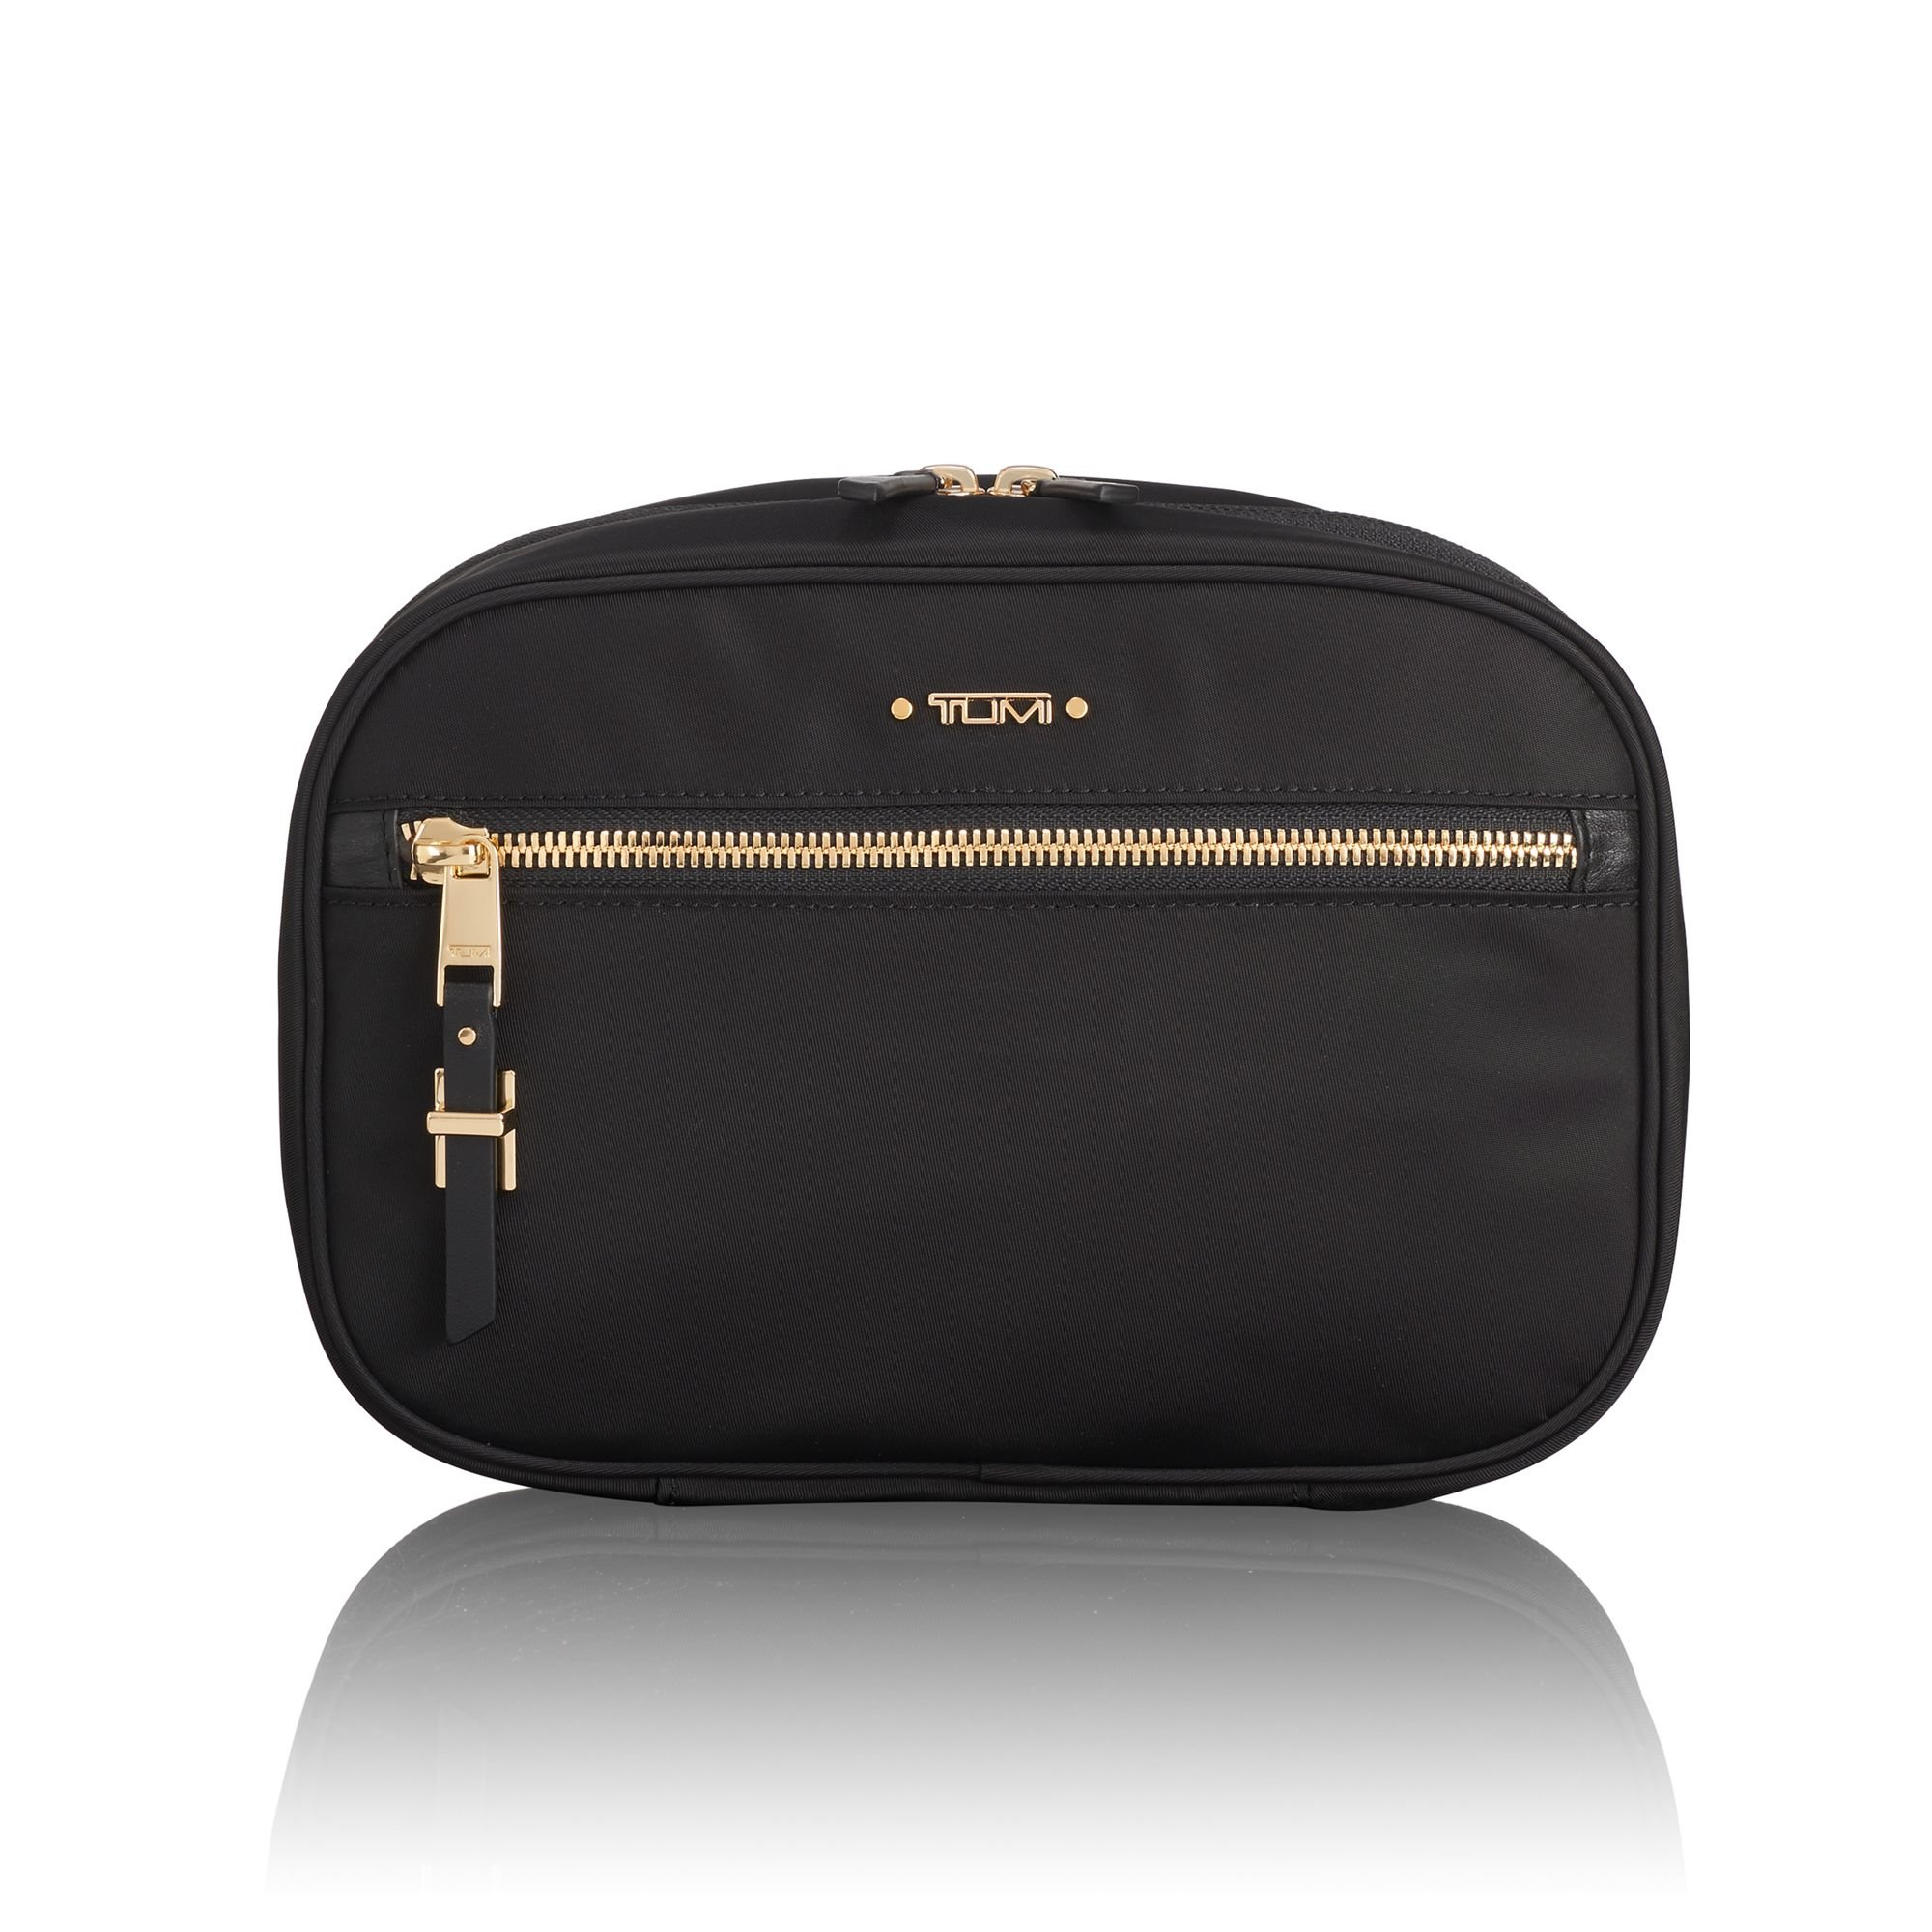 TUMI - Voyageur Yima Cosmetic Bag - Luggage Accessories Travel Kit for Women - Black by TUMI